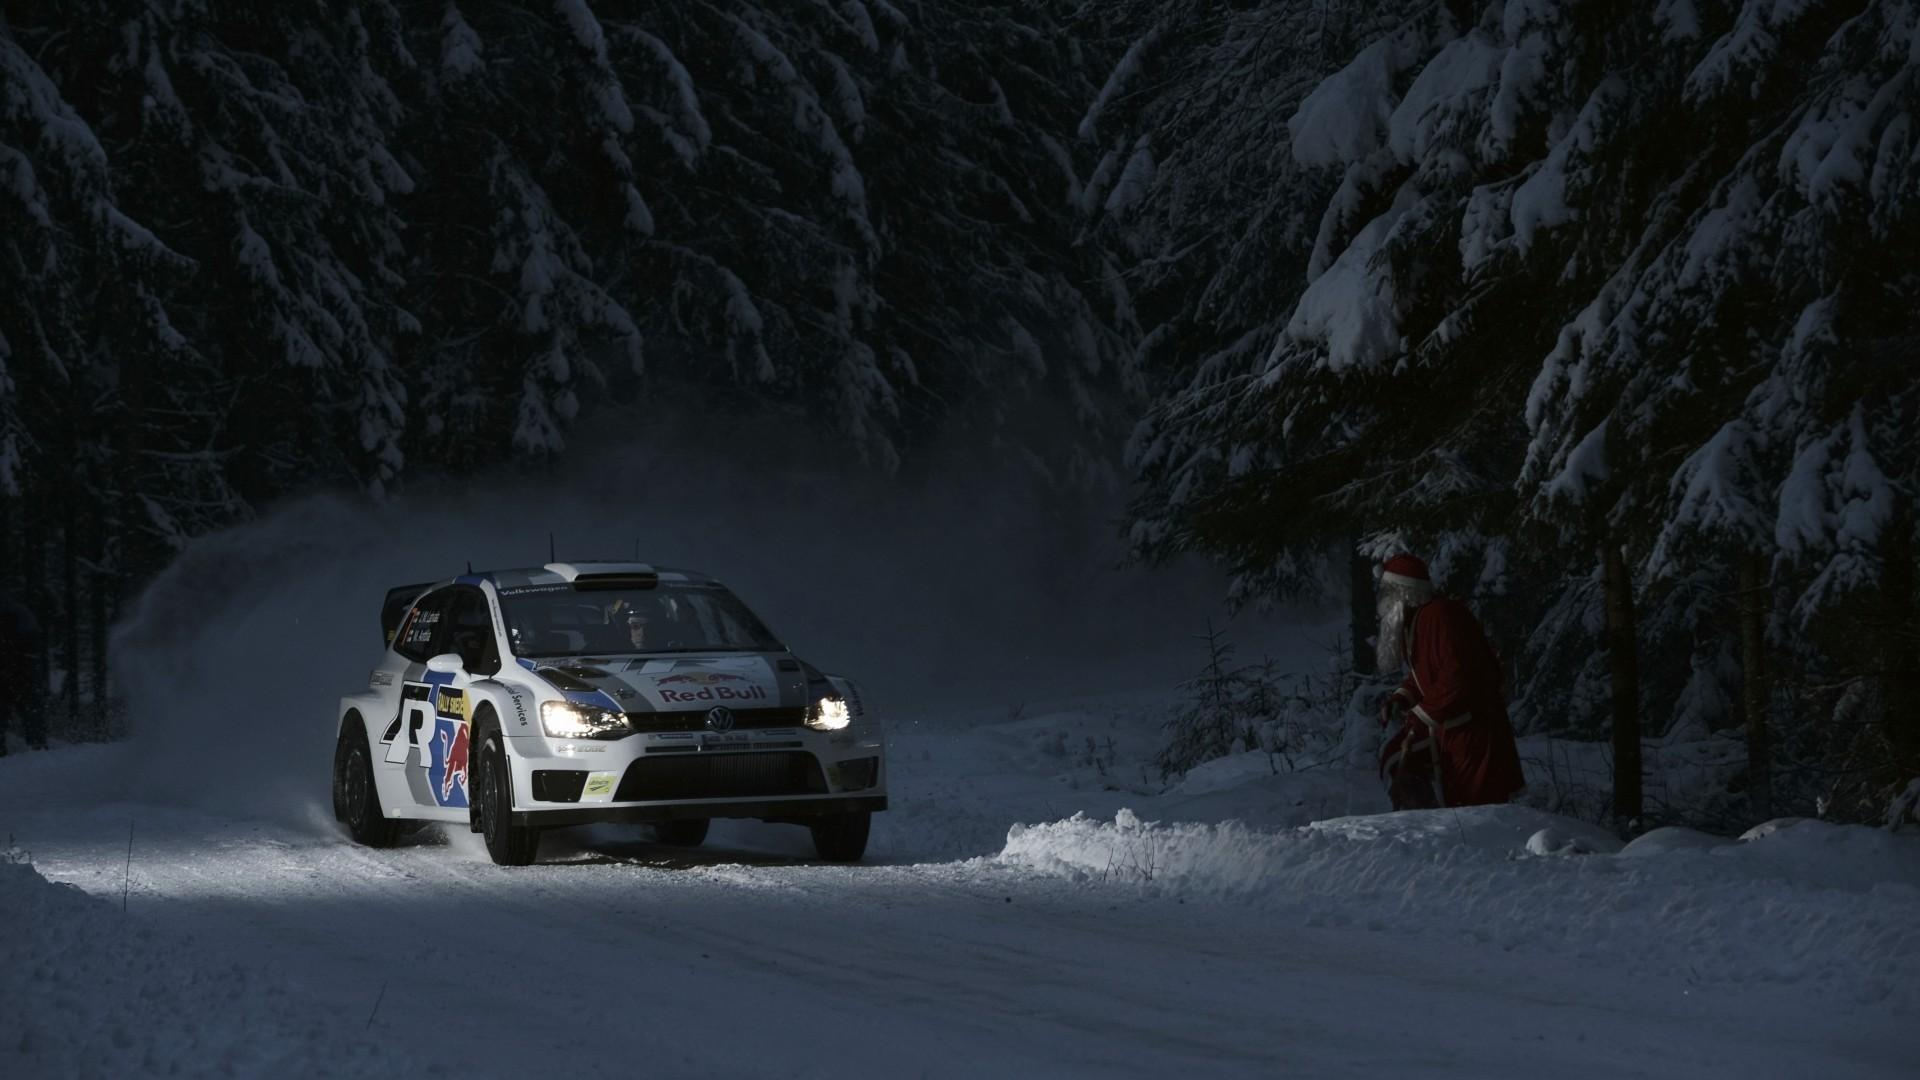 Volkswagen polo r wrc headlights night racing wallpaper | (84040)